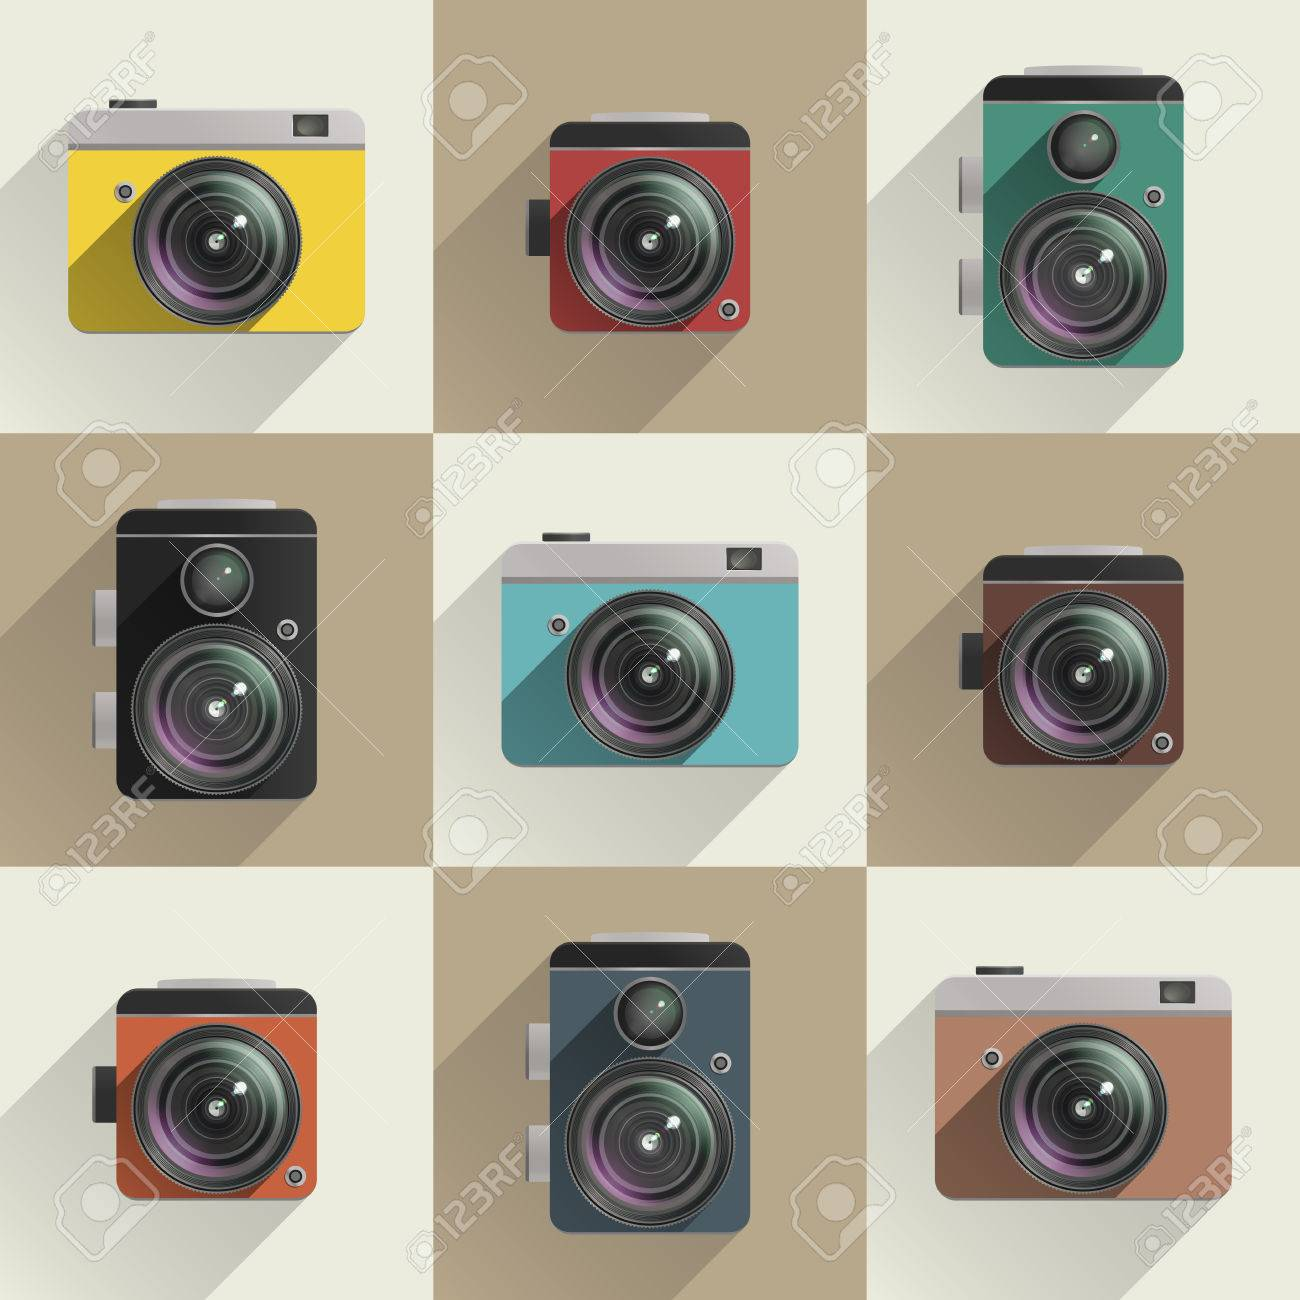 Set of colored camera icons  Different types of cameras